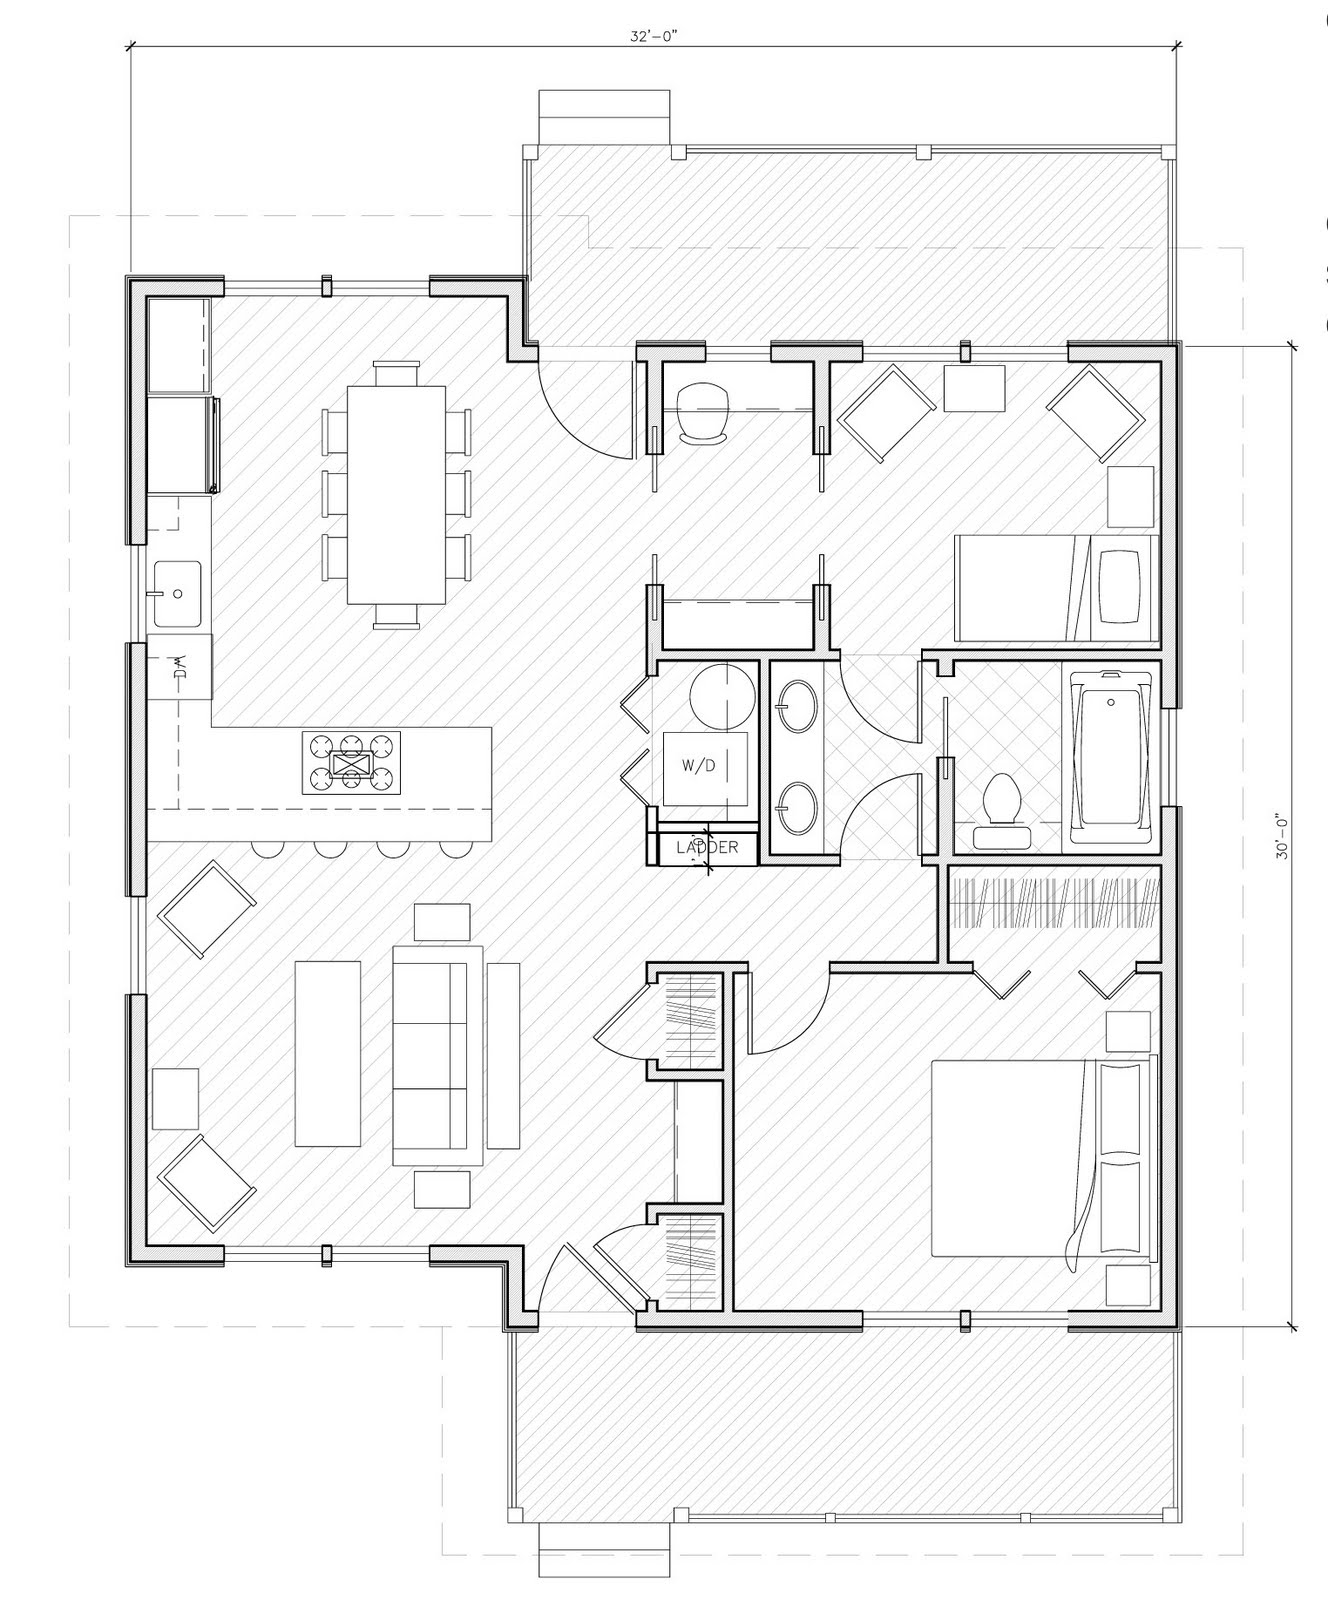 Design Banter: D+A home plans: 3 Plans Under 1,000 Square Feet